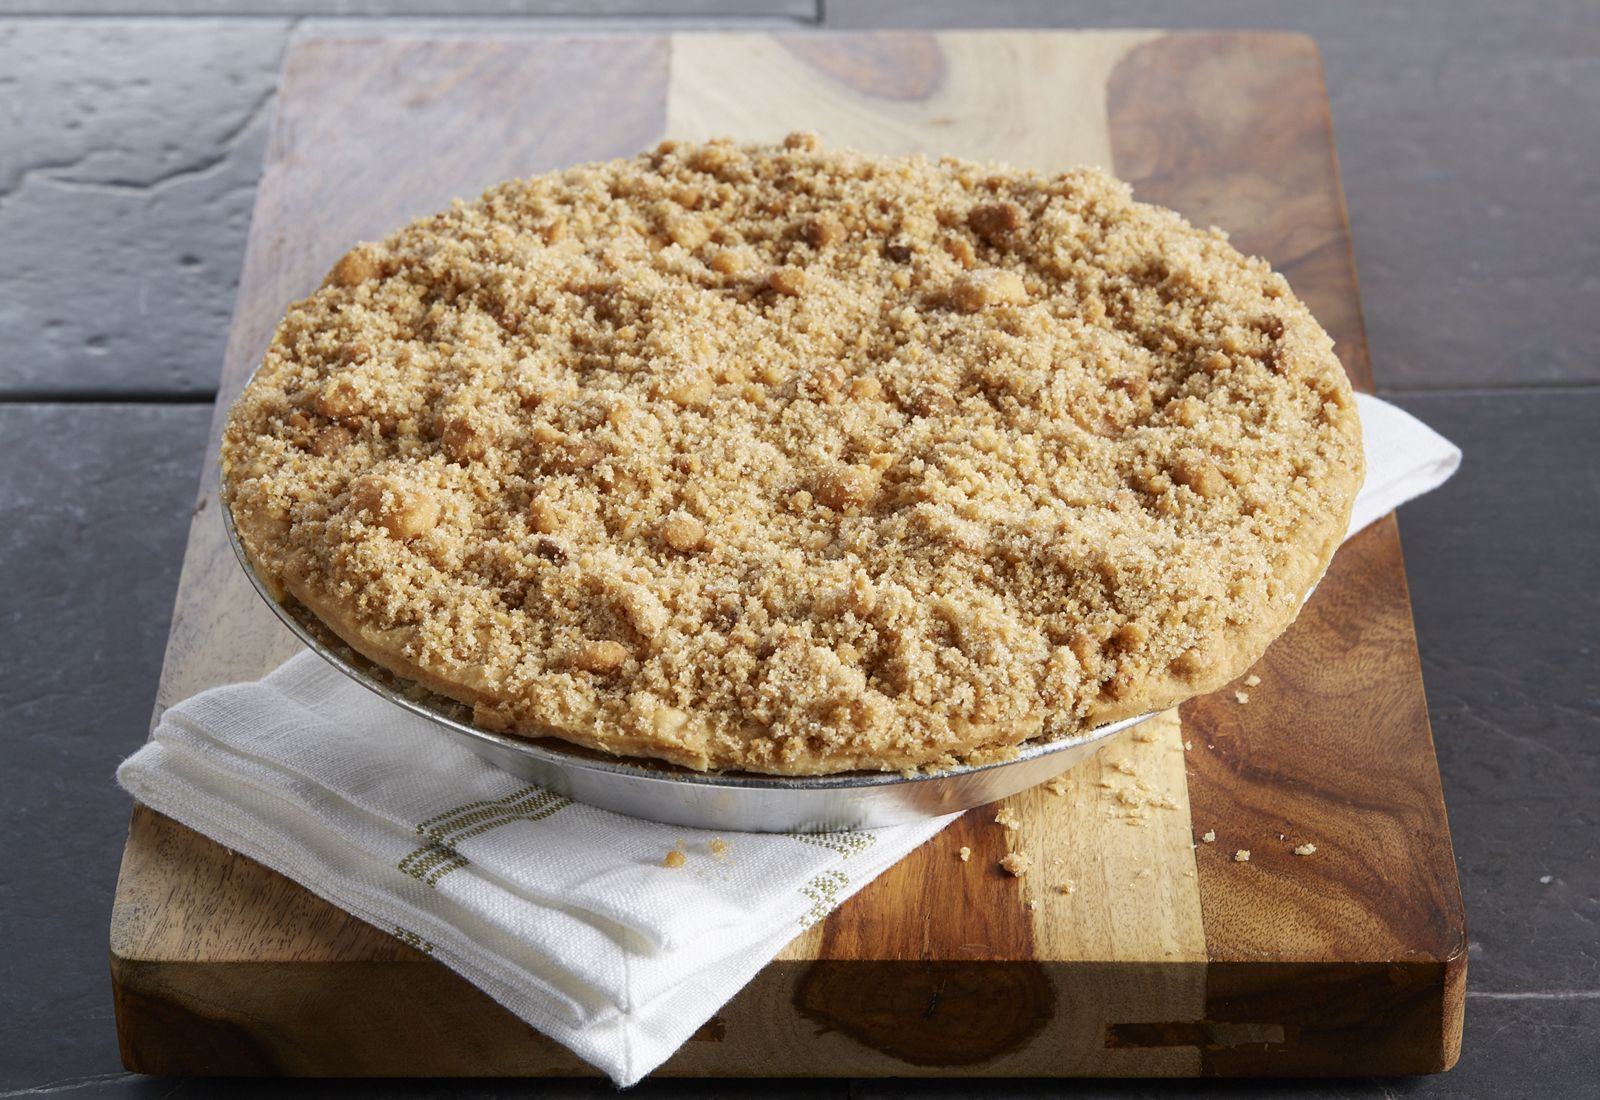 Marie Callender's has announced its widely anticipated Fall Pie Sale will take place from October 1-31, 2020 at all restaurants in California, Nevada, and Utah.